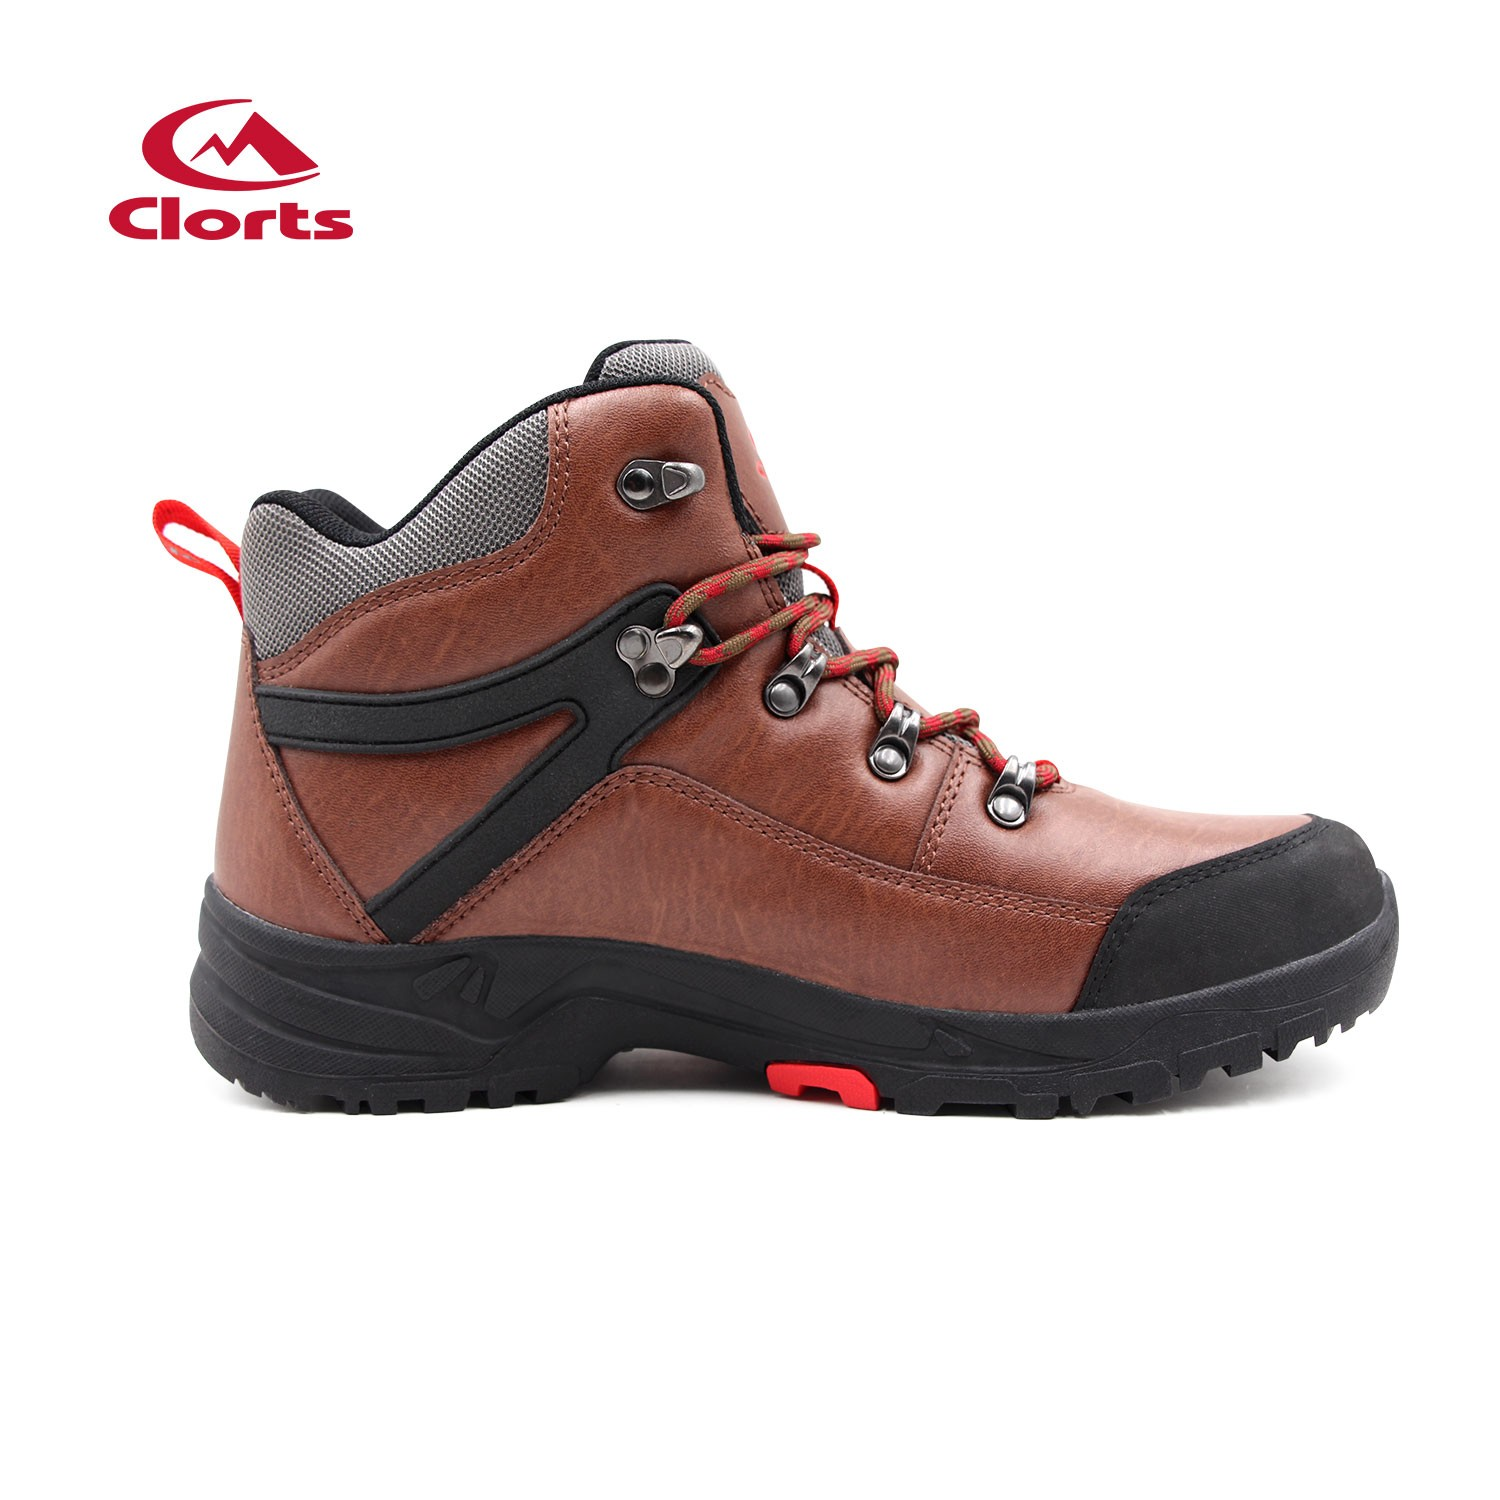 Mens PU Hiking boots Manufacturers, Mens PU Hiking boots Factory, Supply Mens PU Hiking boots